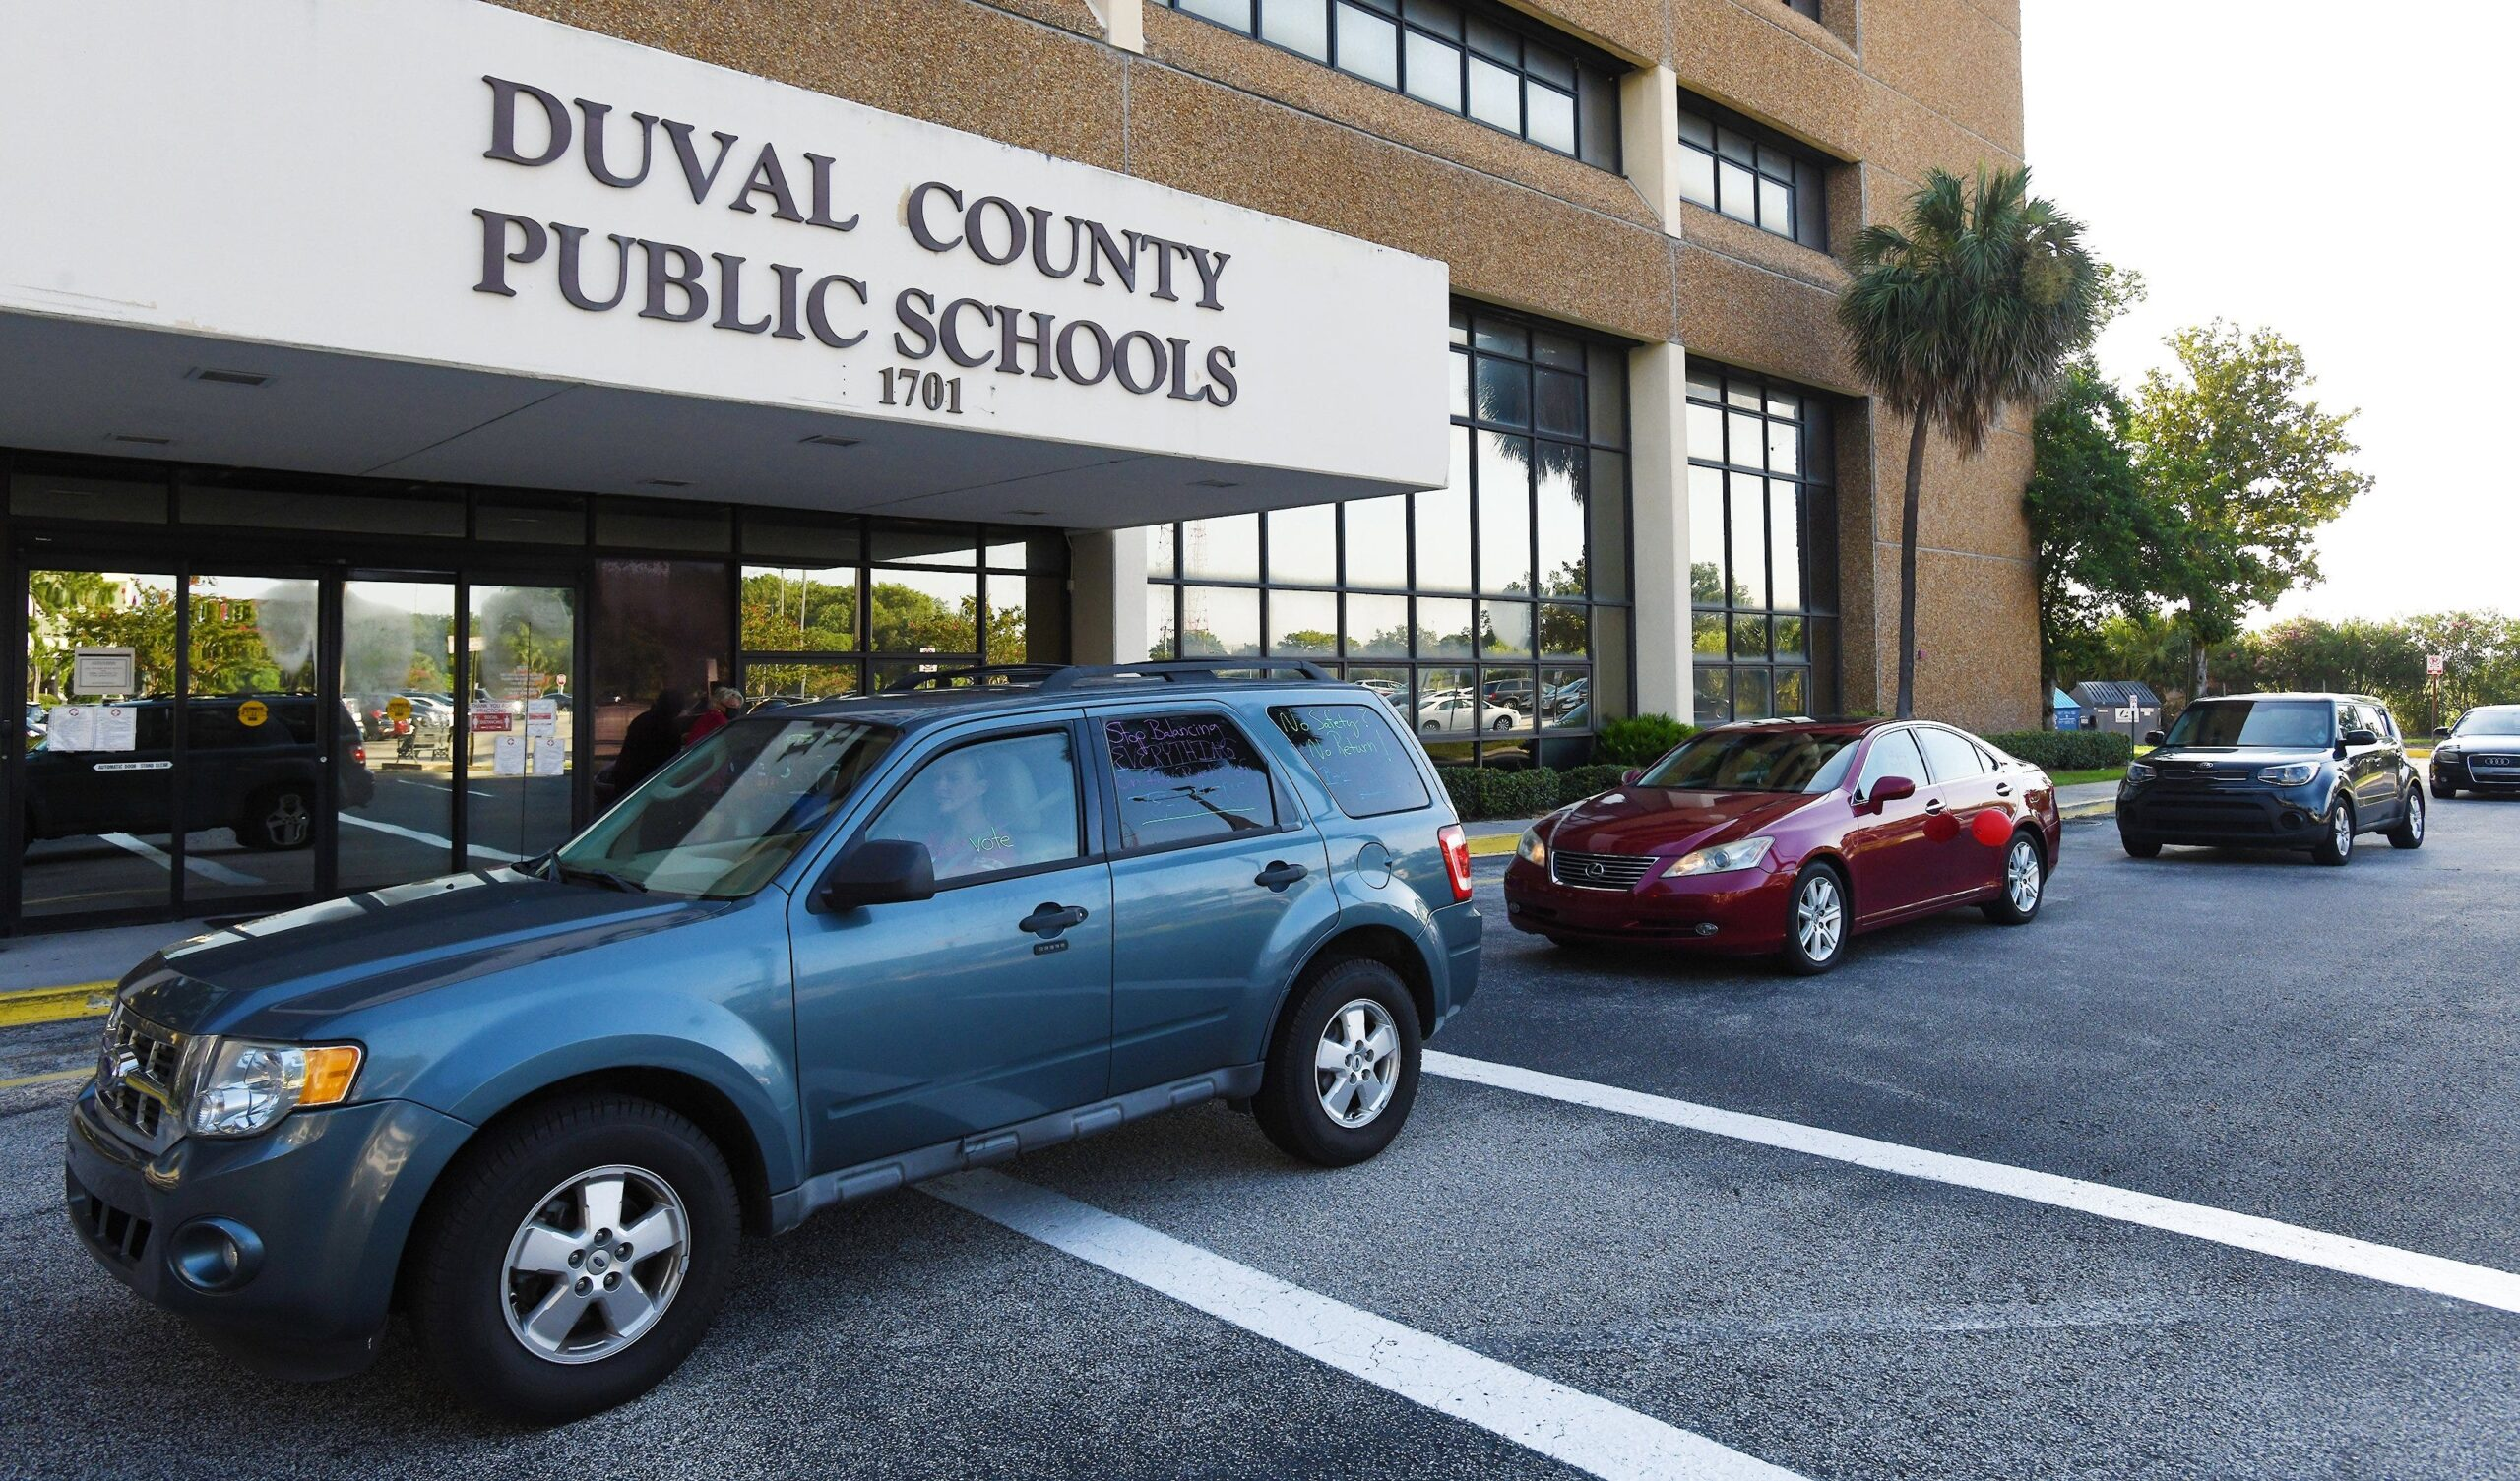 Duval County Schools headquarters